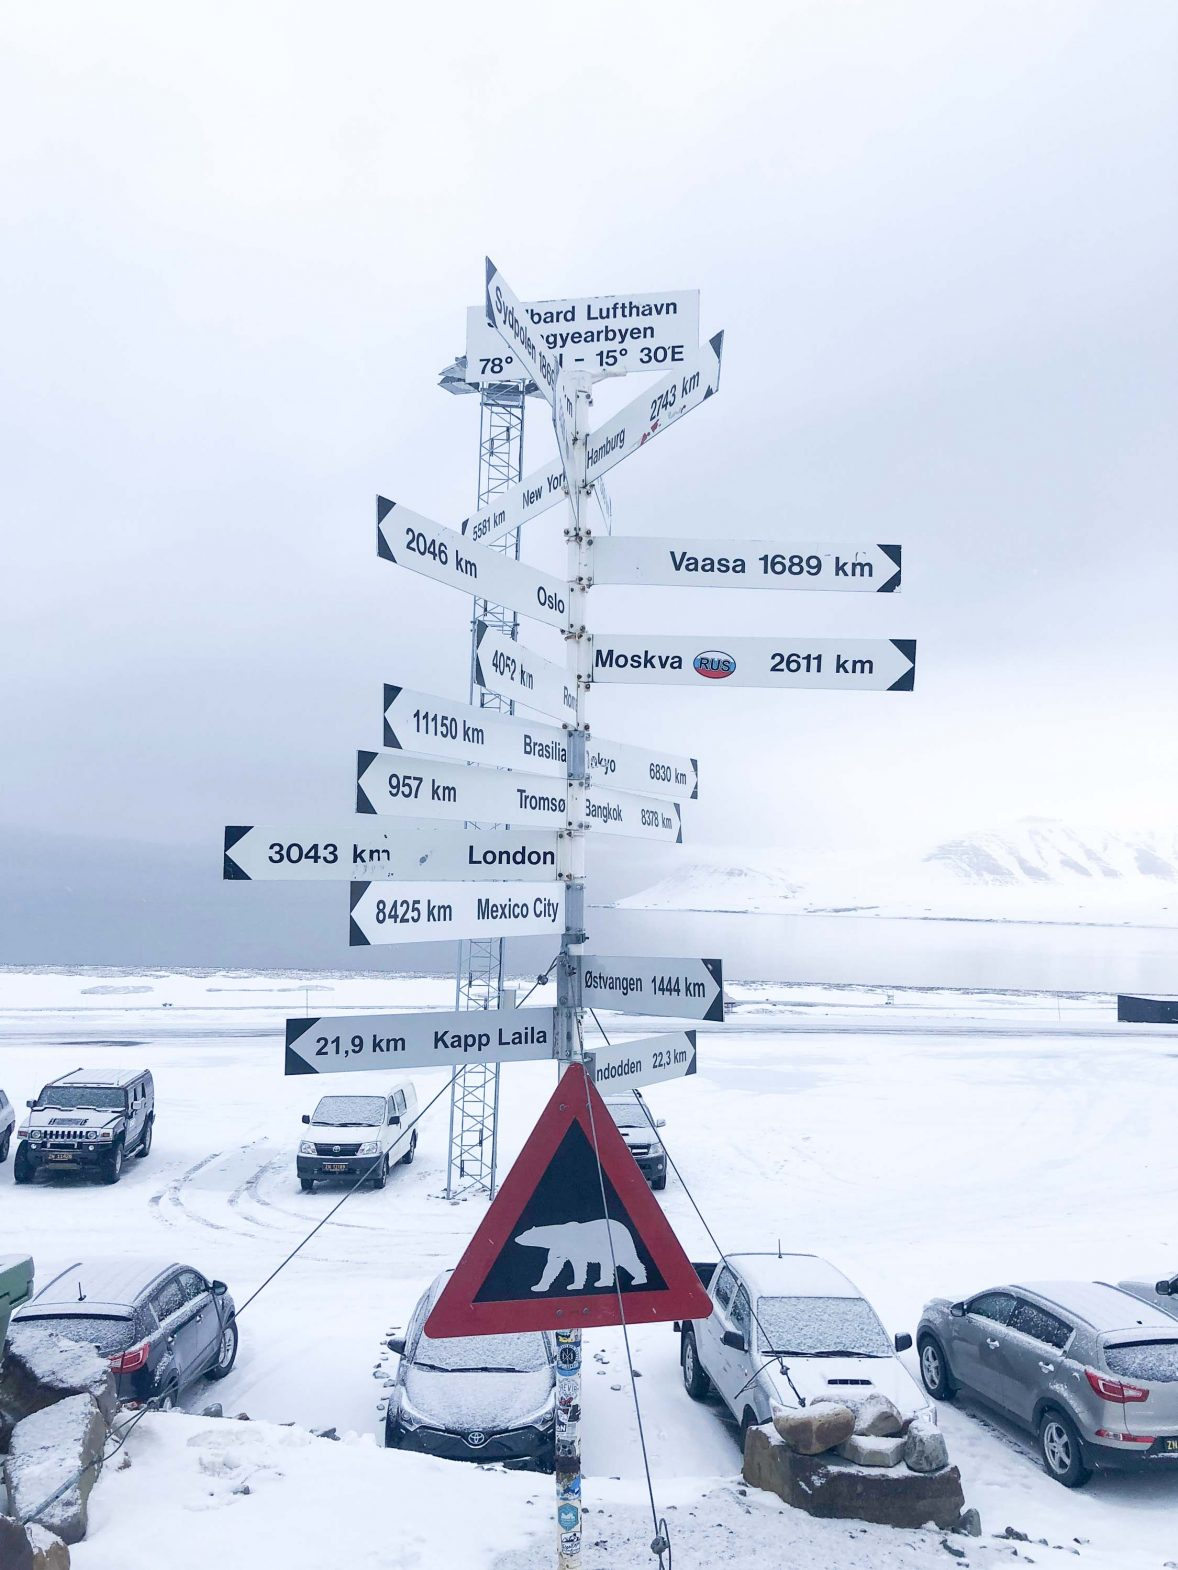 Longyearbyen airport in the Svalbard archipelago has a polar bear warning plus a host of signs showing how far it is from the rest of the world.